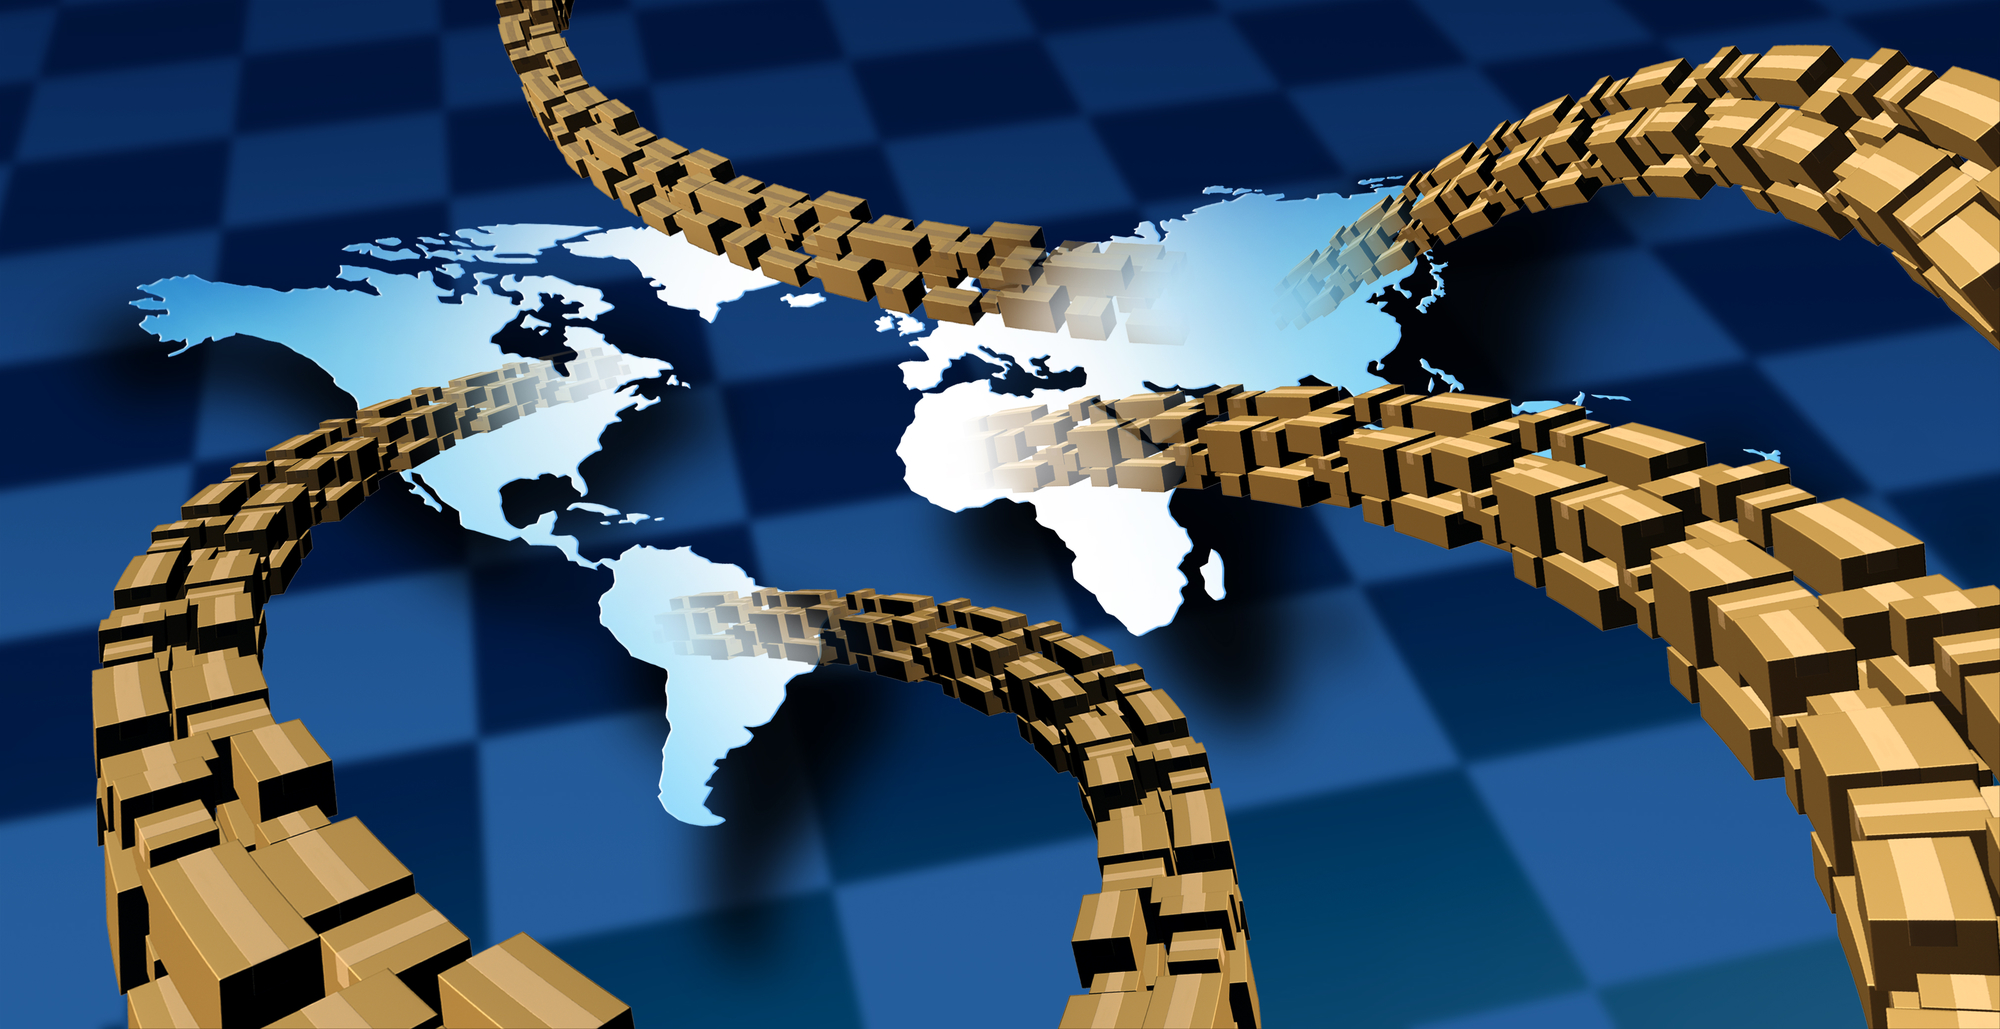 Supply chain management all over the world